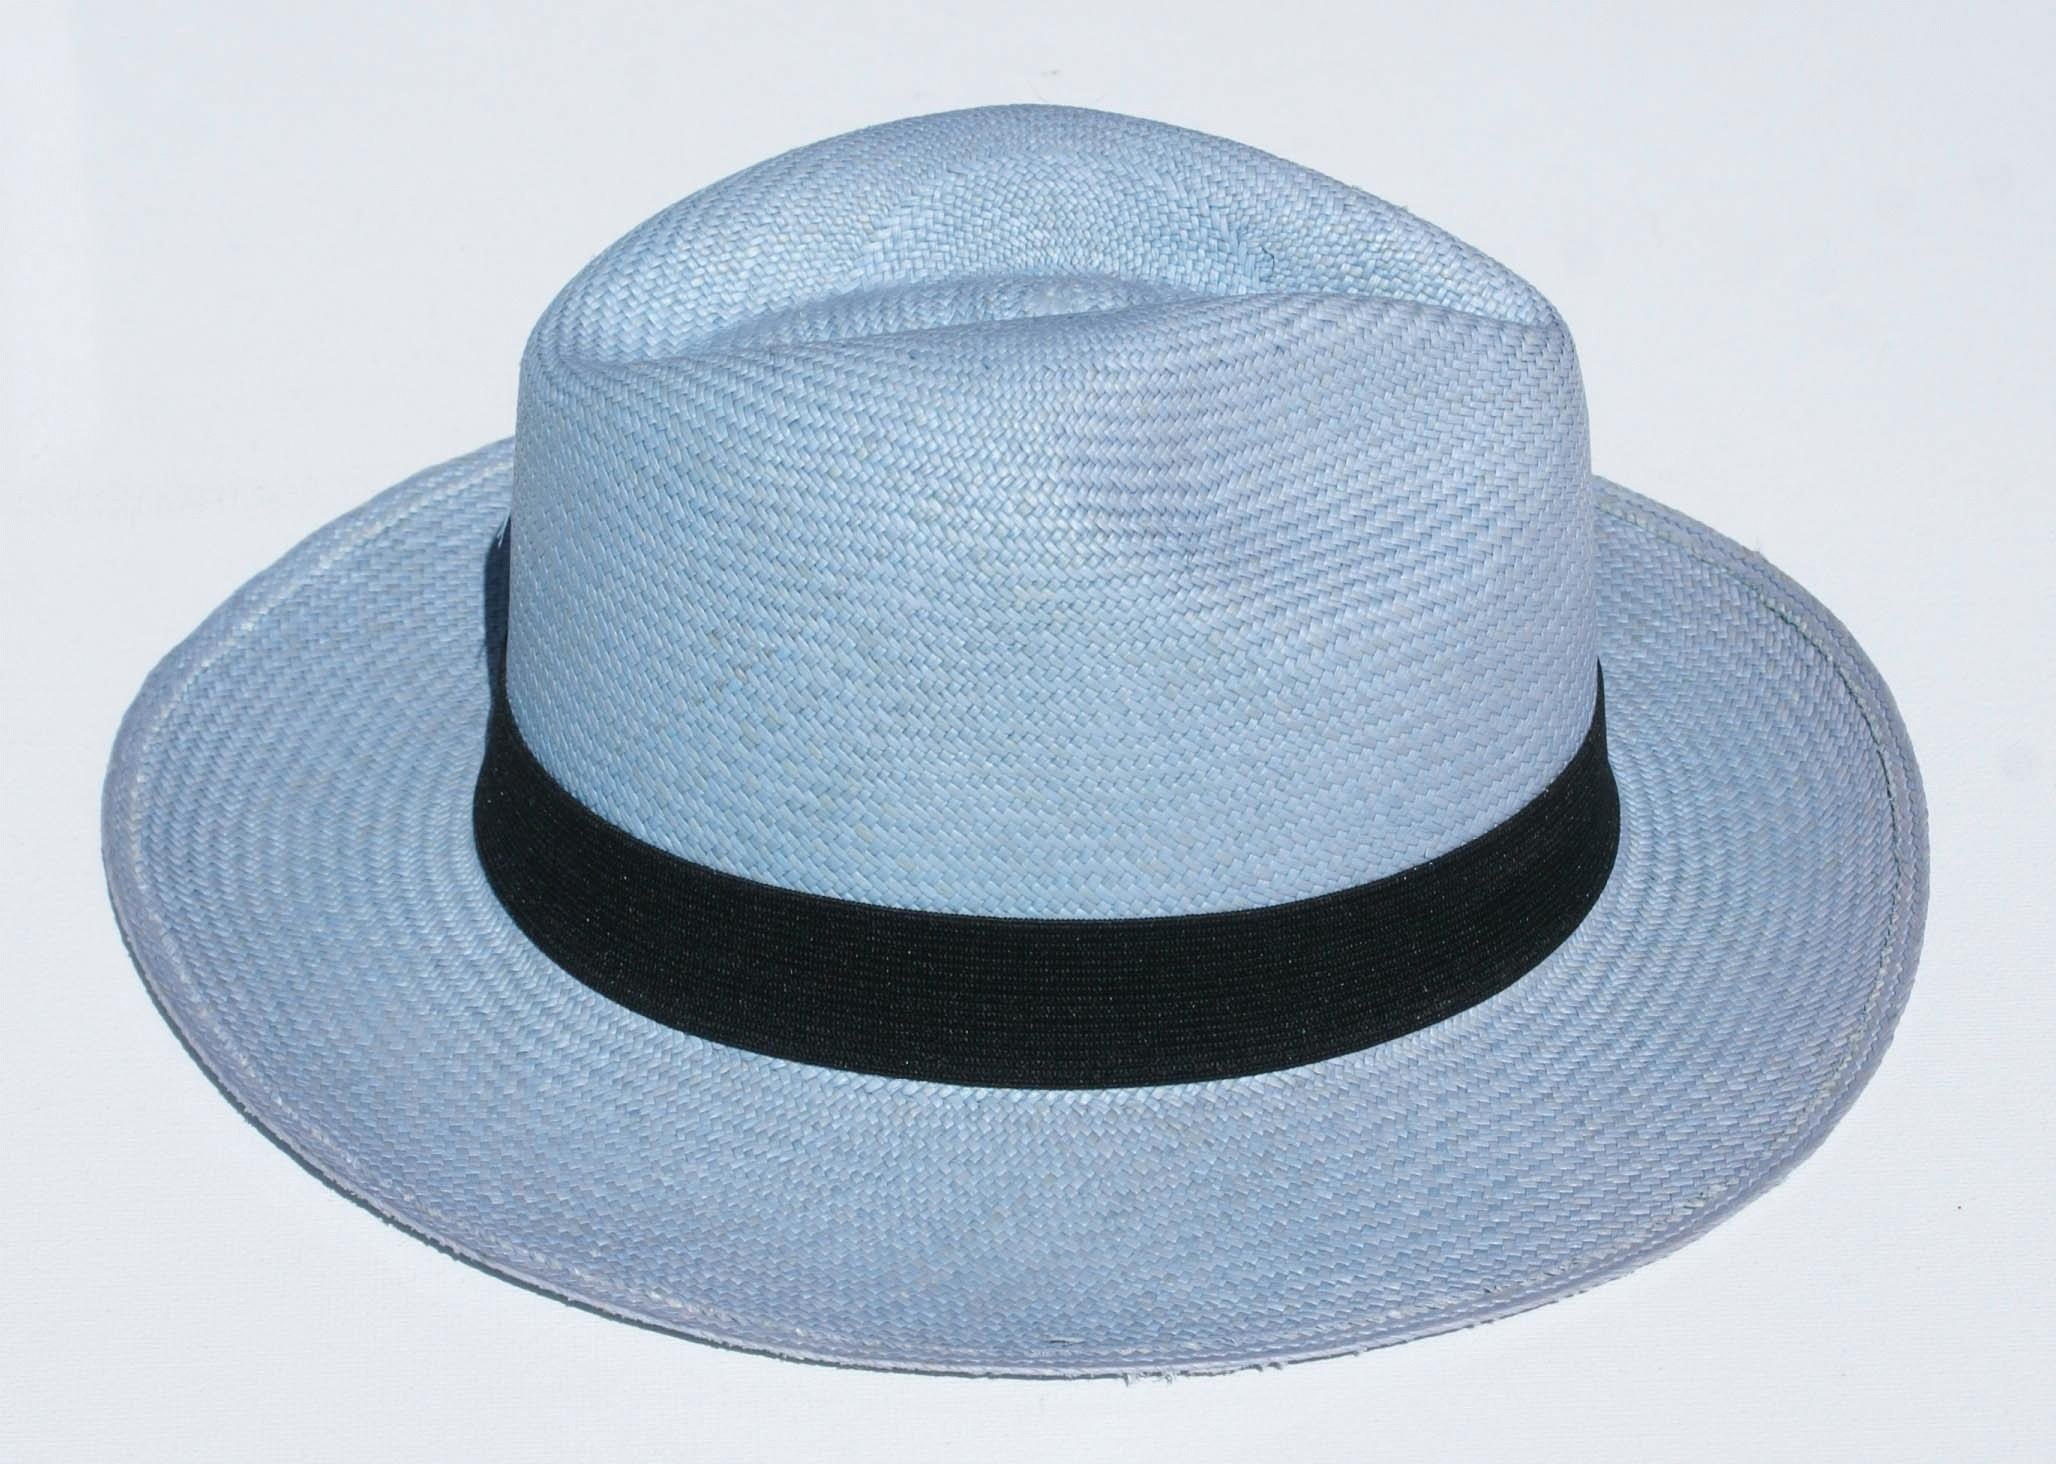 Find great deals on eBay for mens blue straw hat. Shop with confidence.